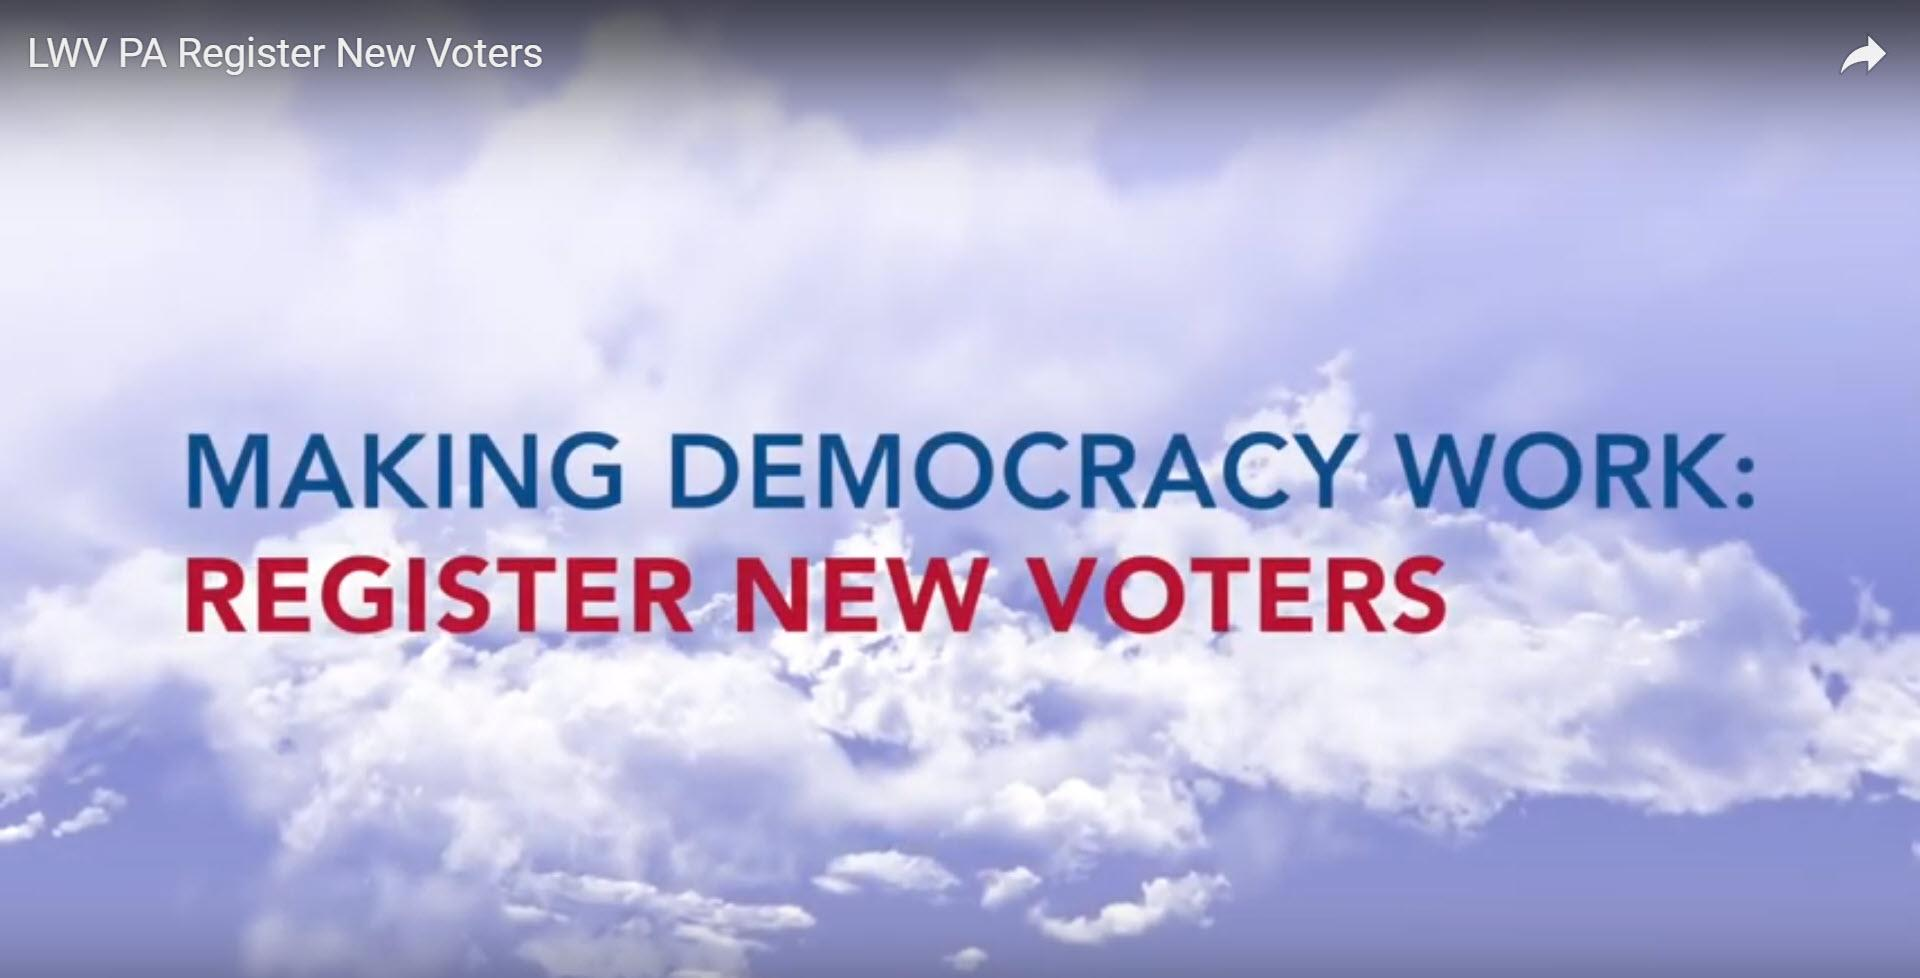 Register new voters